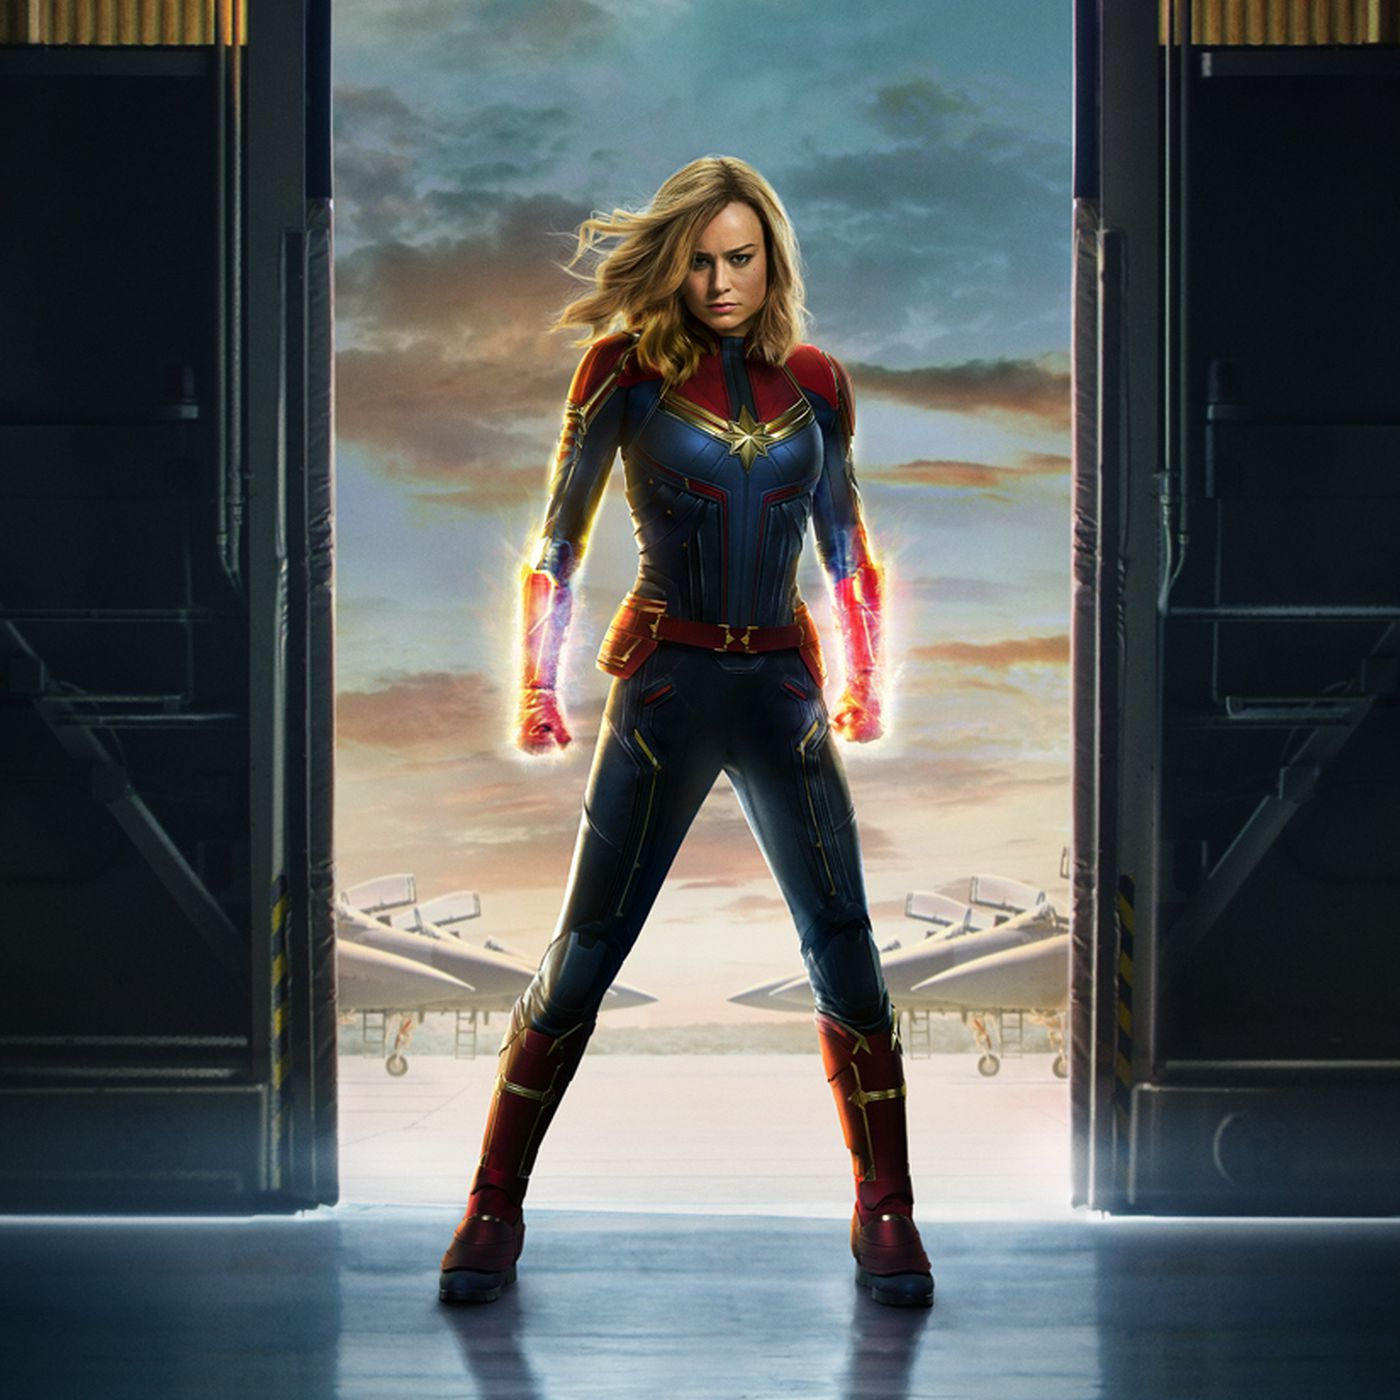 captain marvel allegory stance